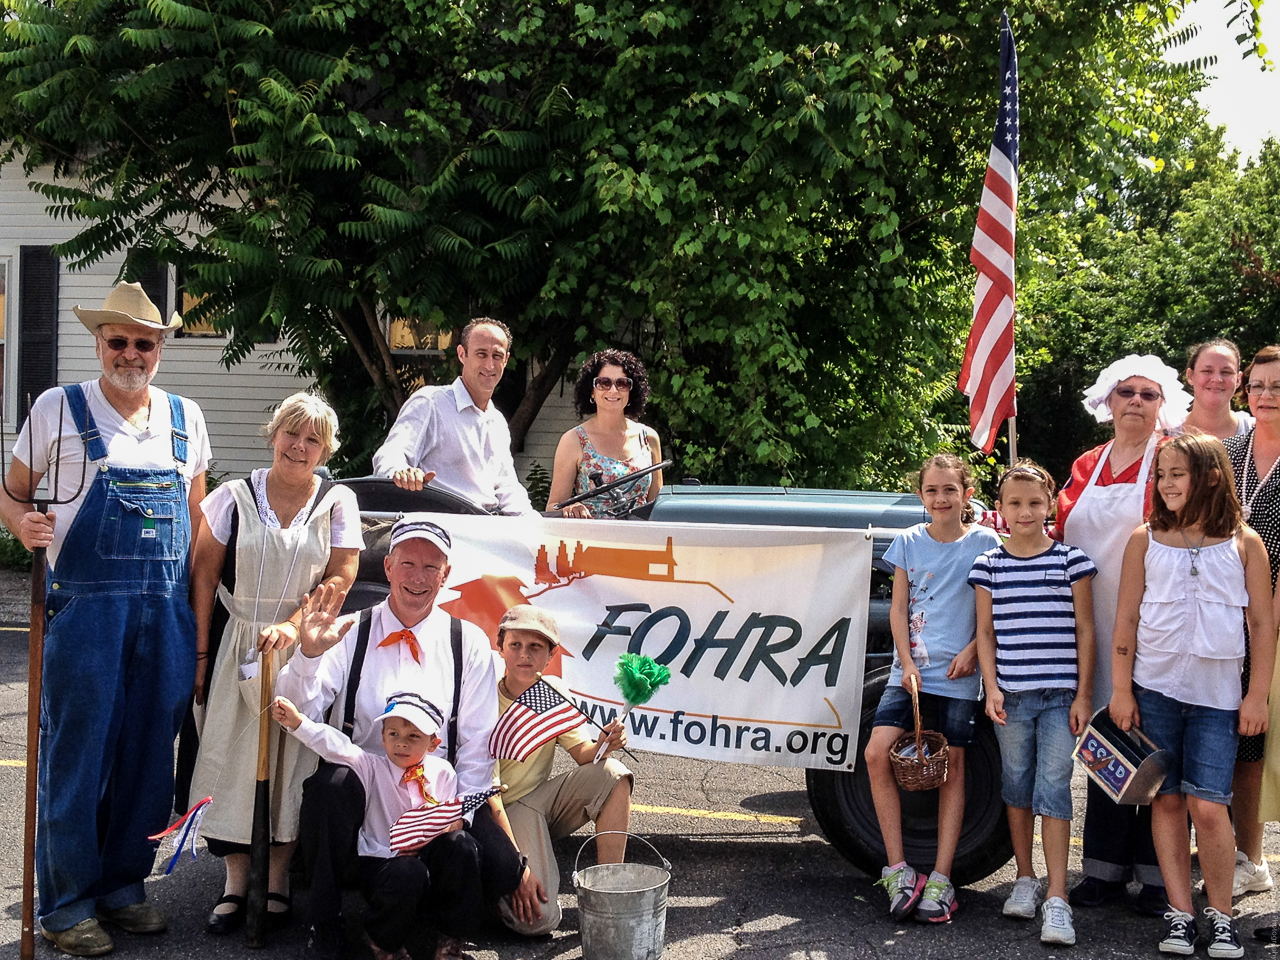 FOHRA Group Milford 4th Parade 2013IMG_1346